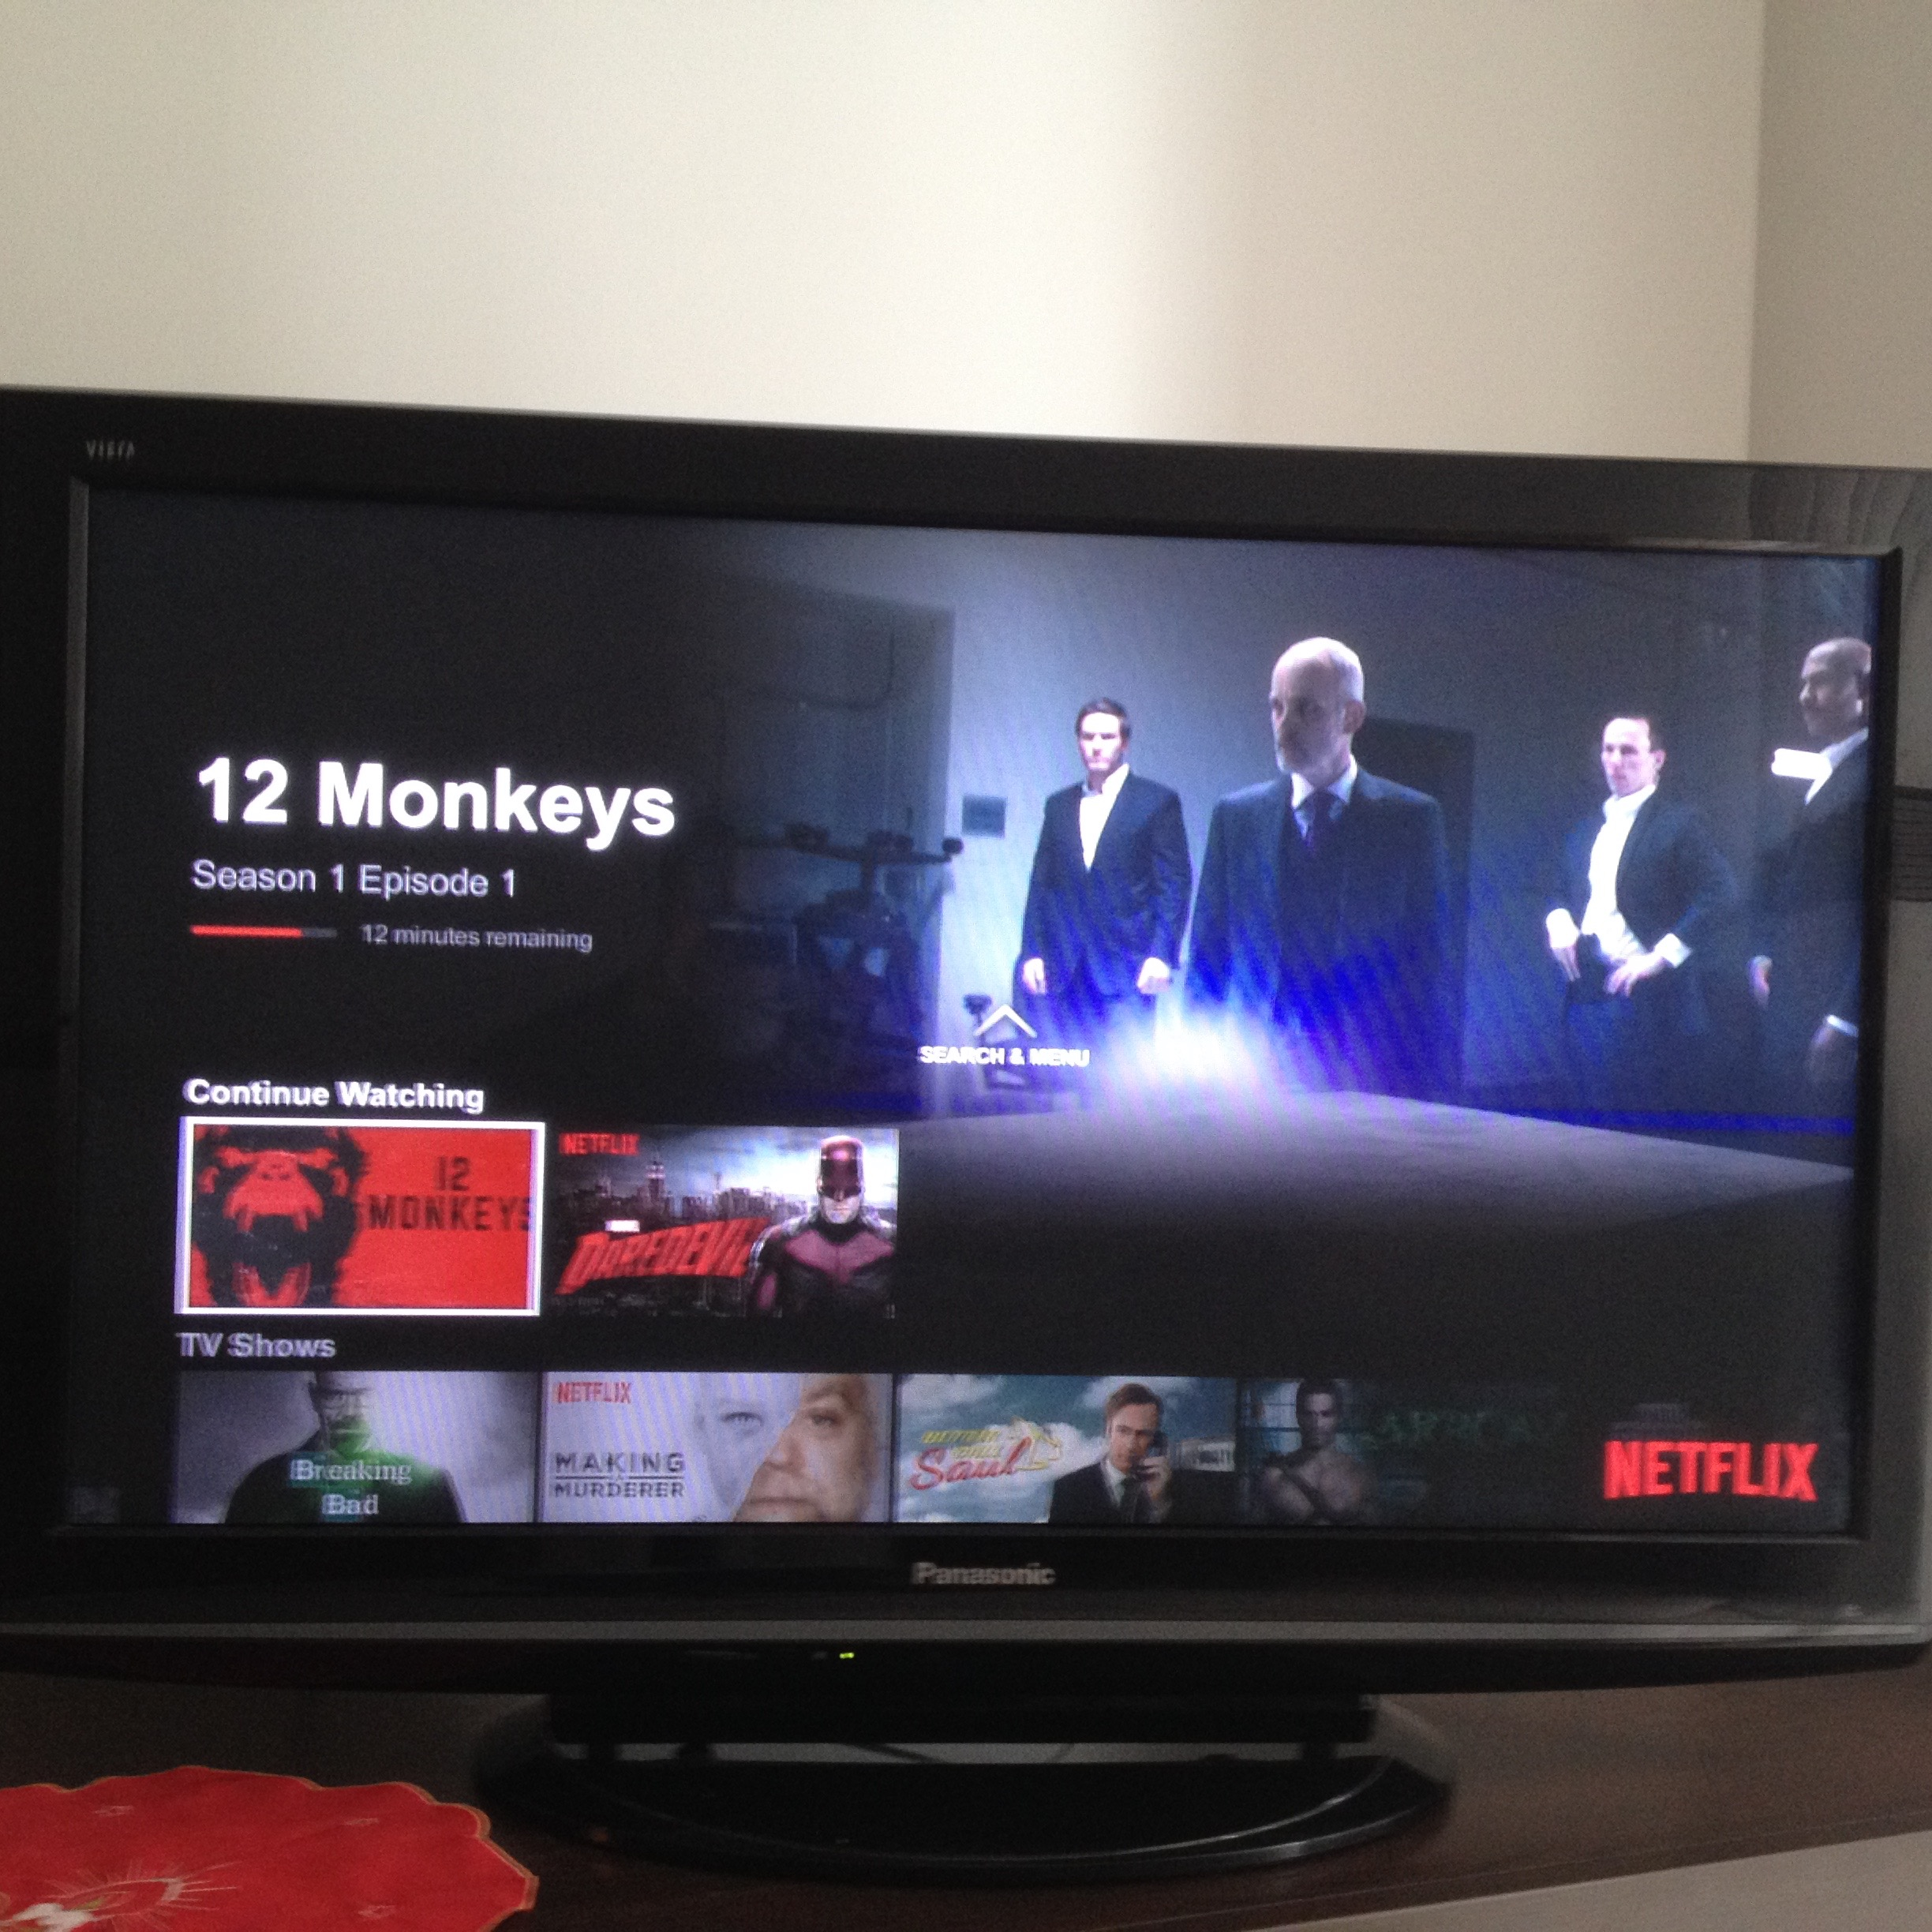 How BBST Test Design course helped me with Netflix setup